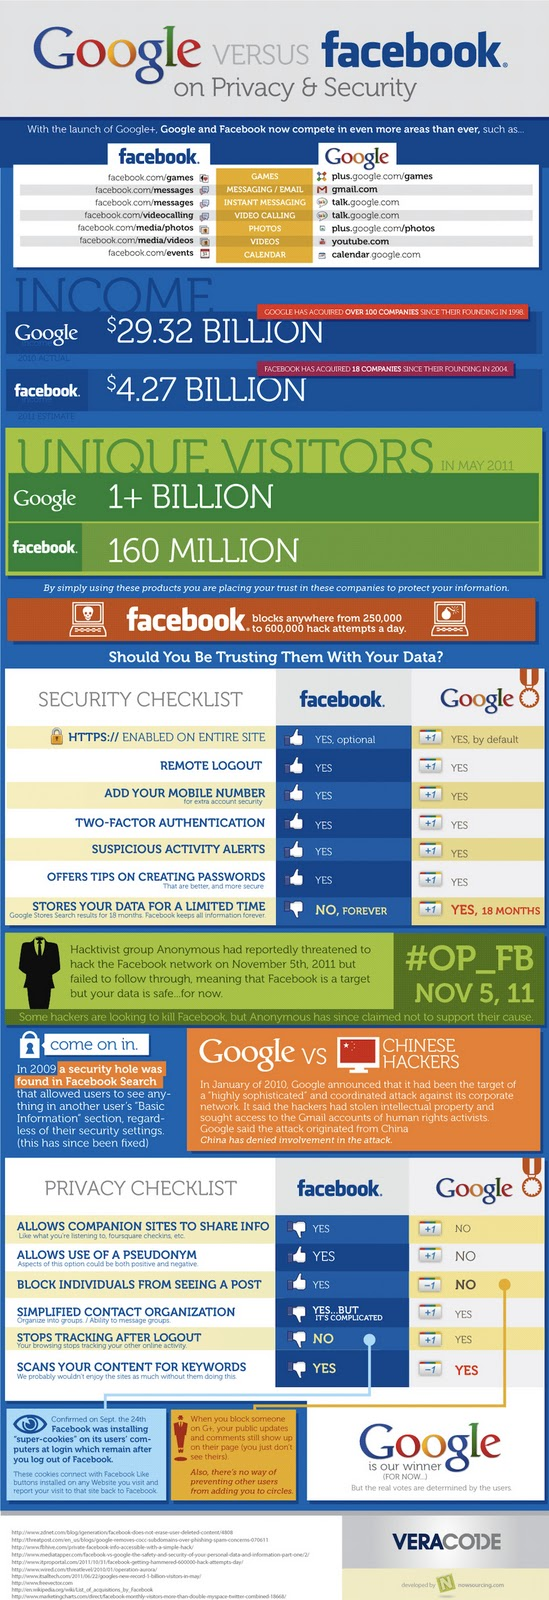 Google And Facebook's Privacy & Security Measures